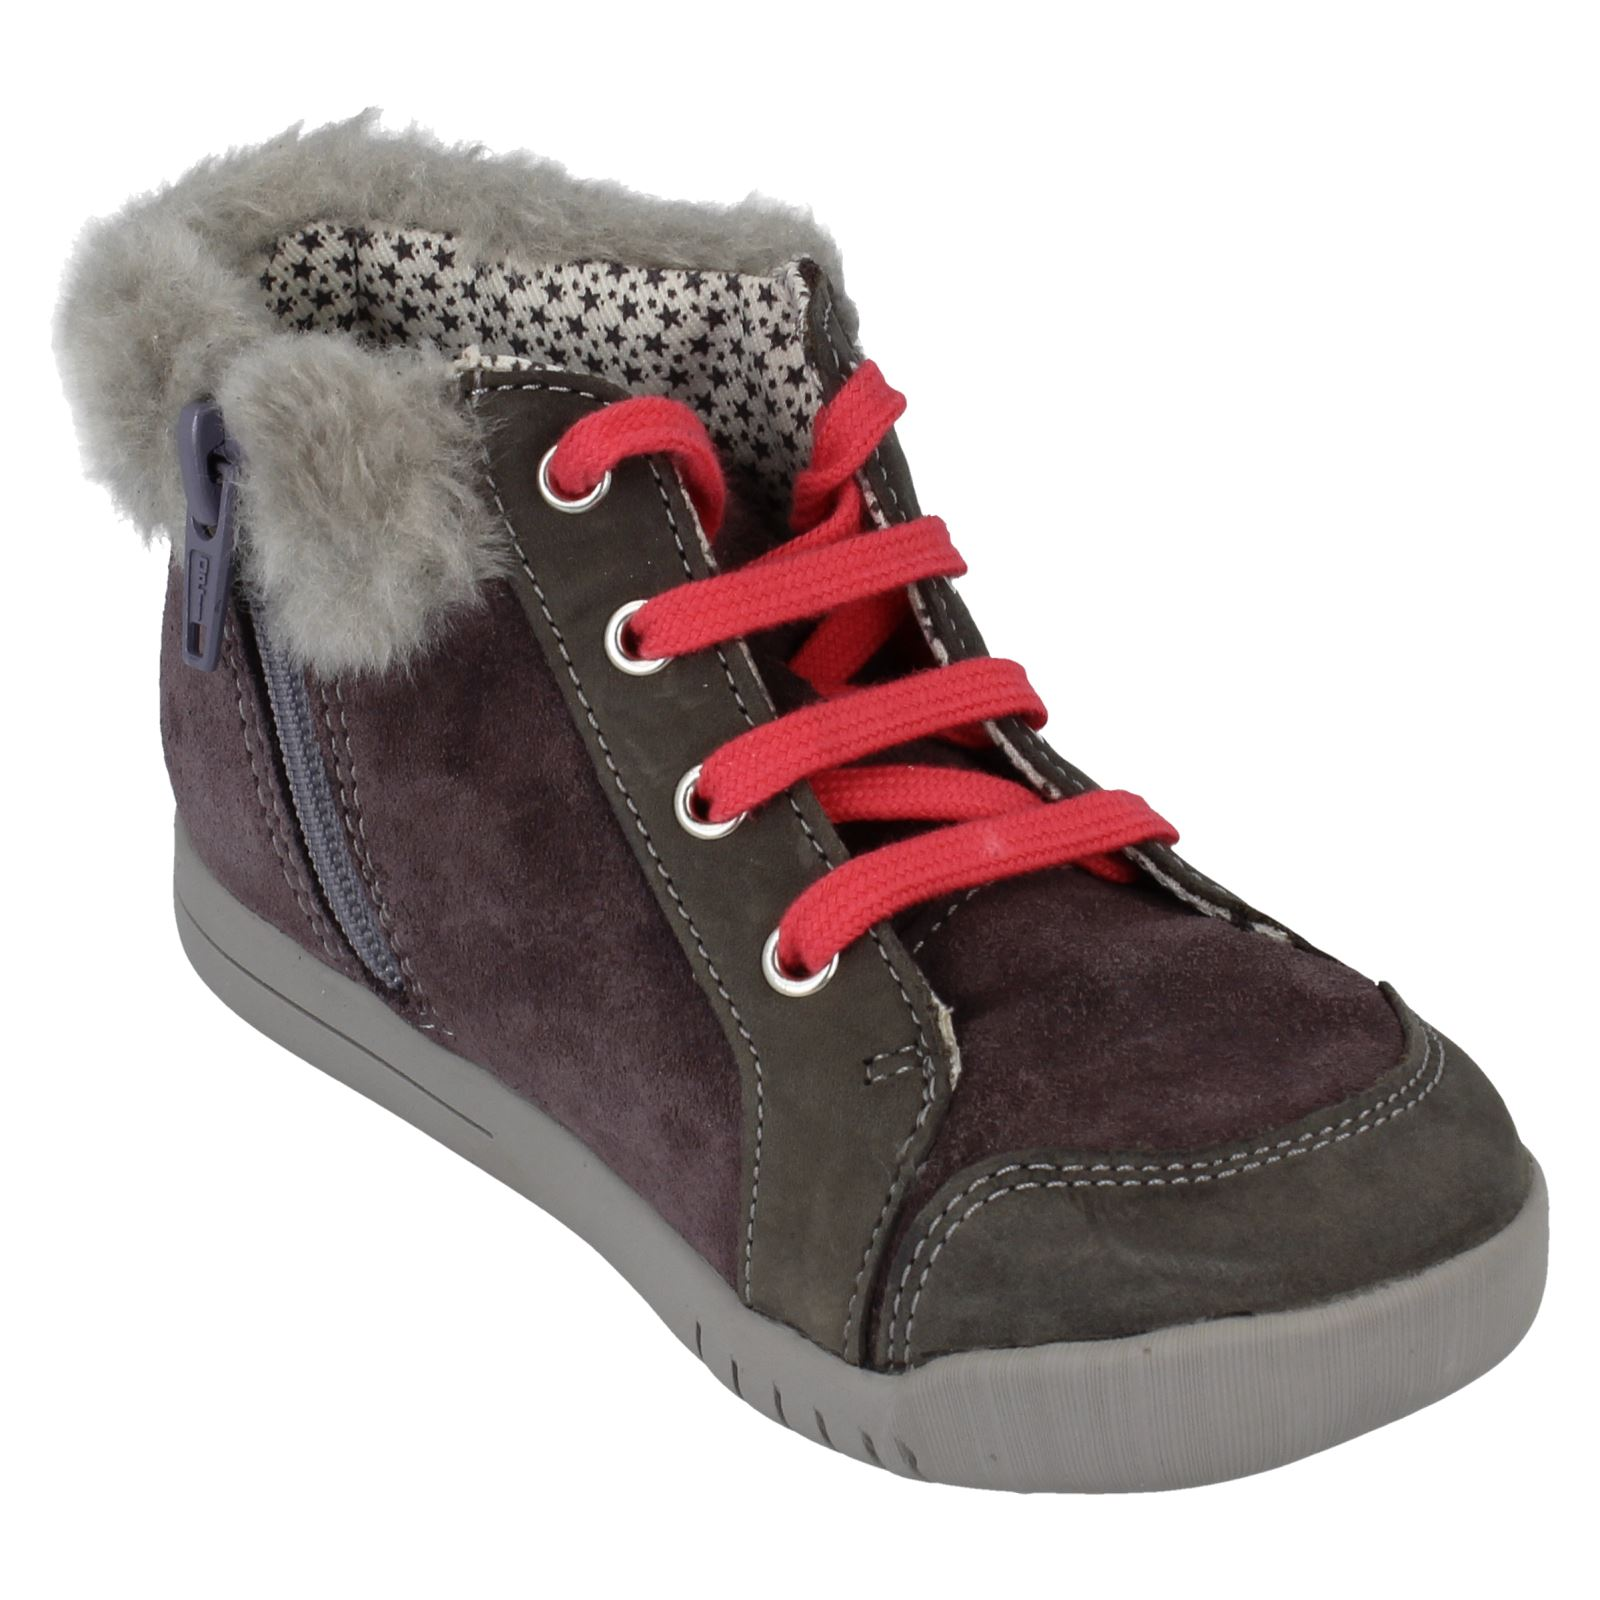 Girls Clarks Buckle Casual Shoes Crazy Dot